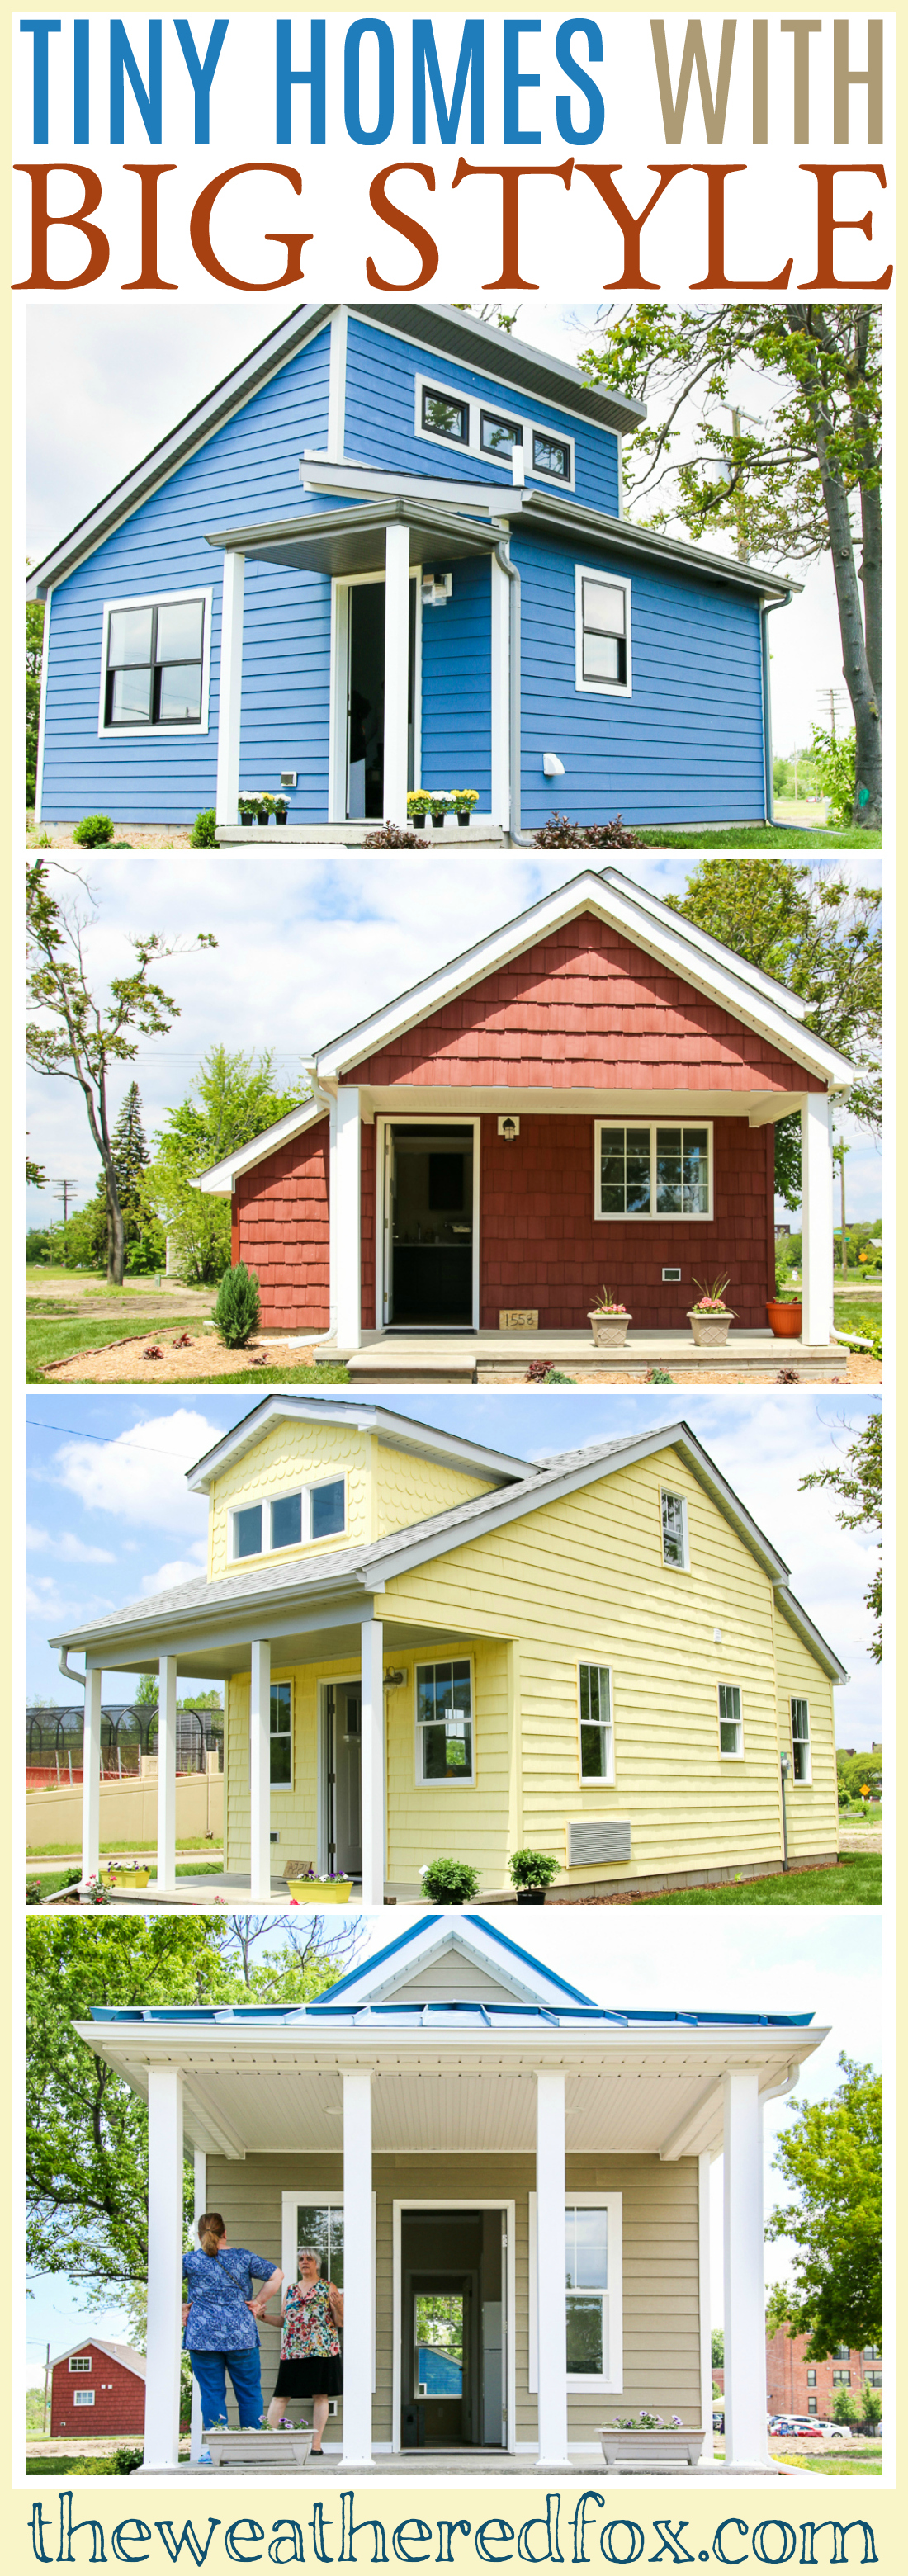 Tiny homes Big style. Take a tour of this charming tiny home neighborhood in Detroit, Michigan. Get style ideas for your tiny dream home!